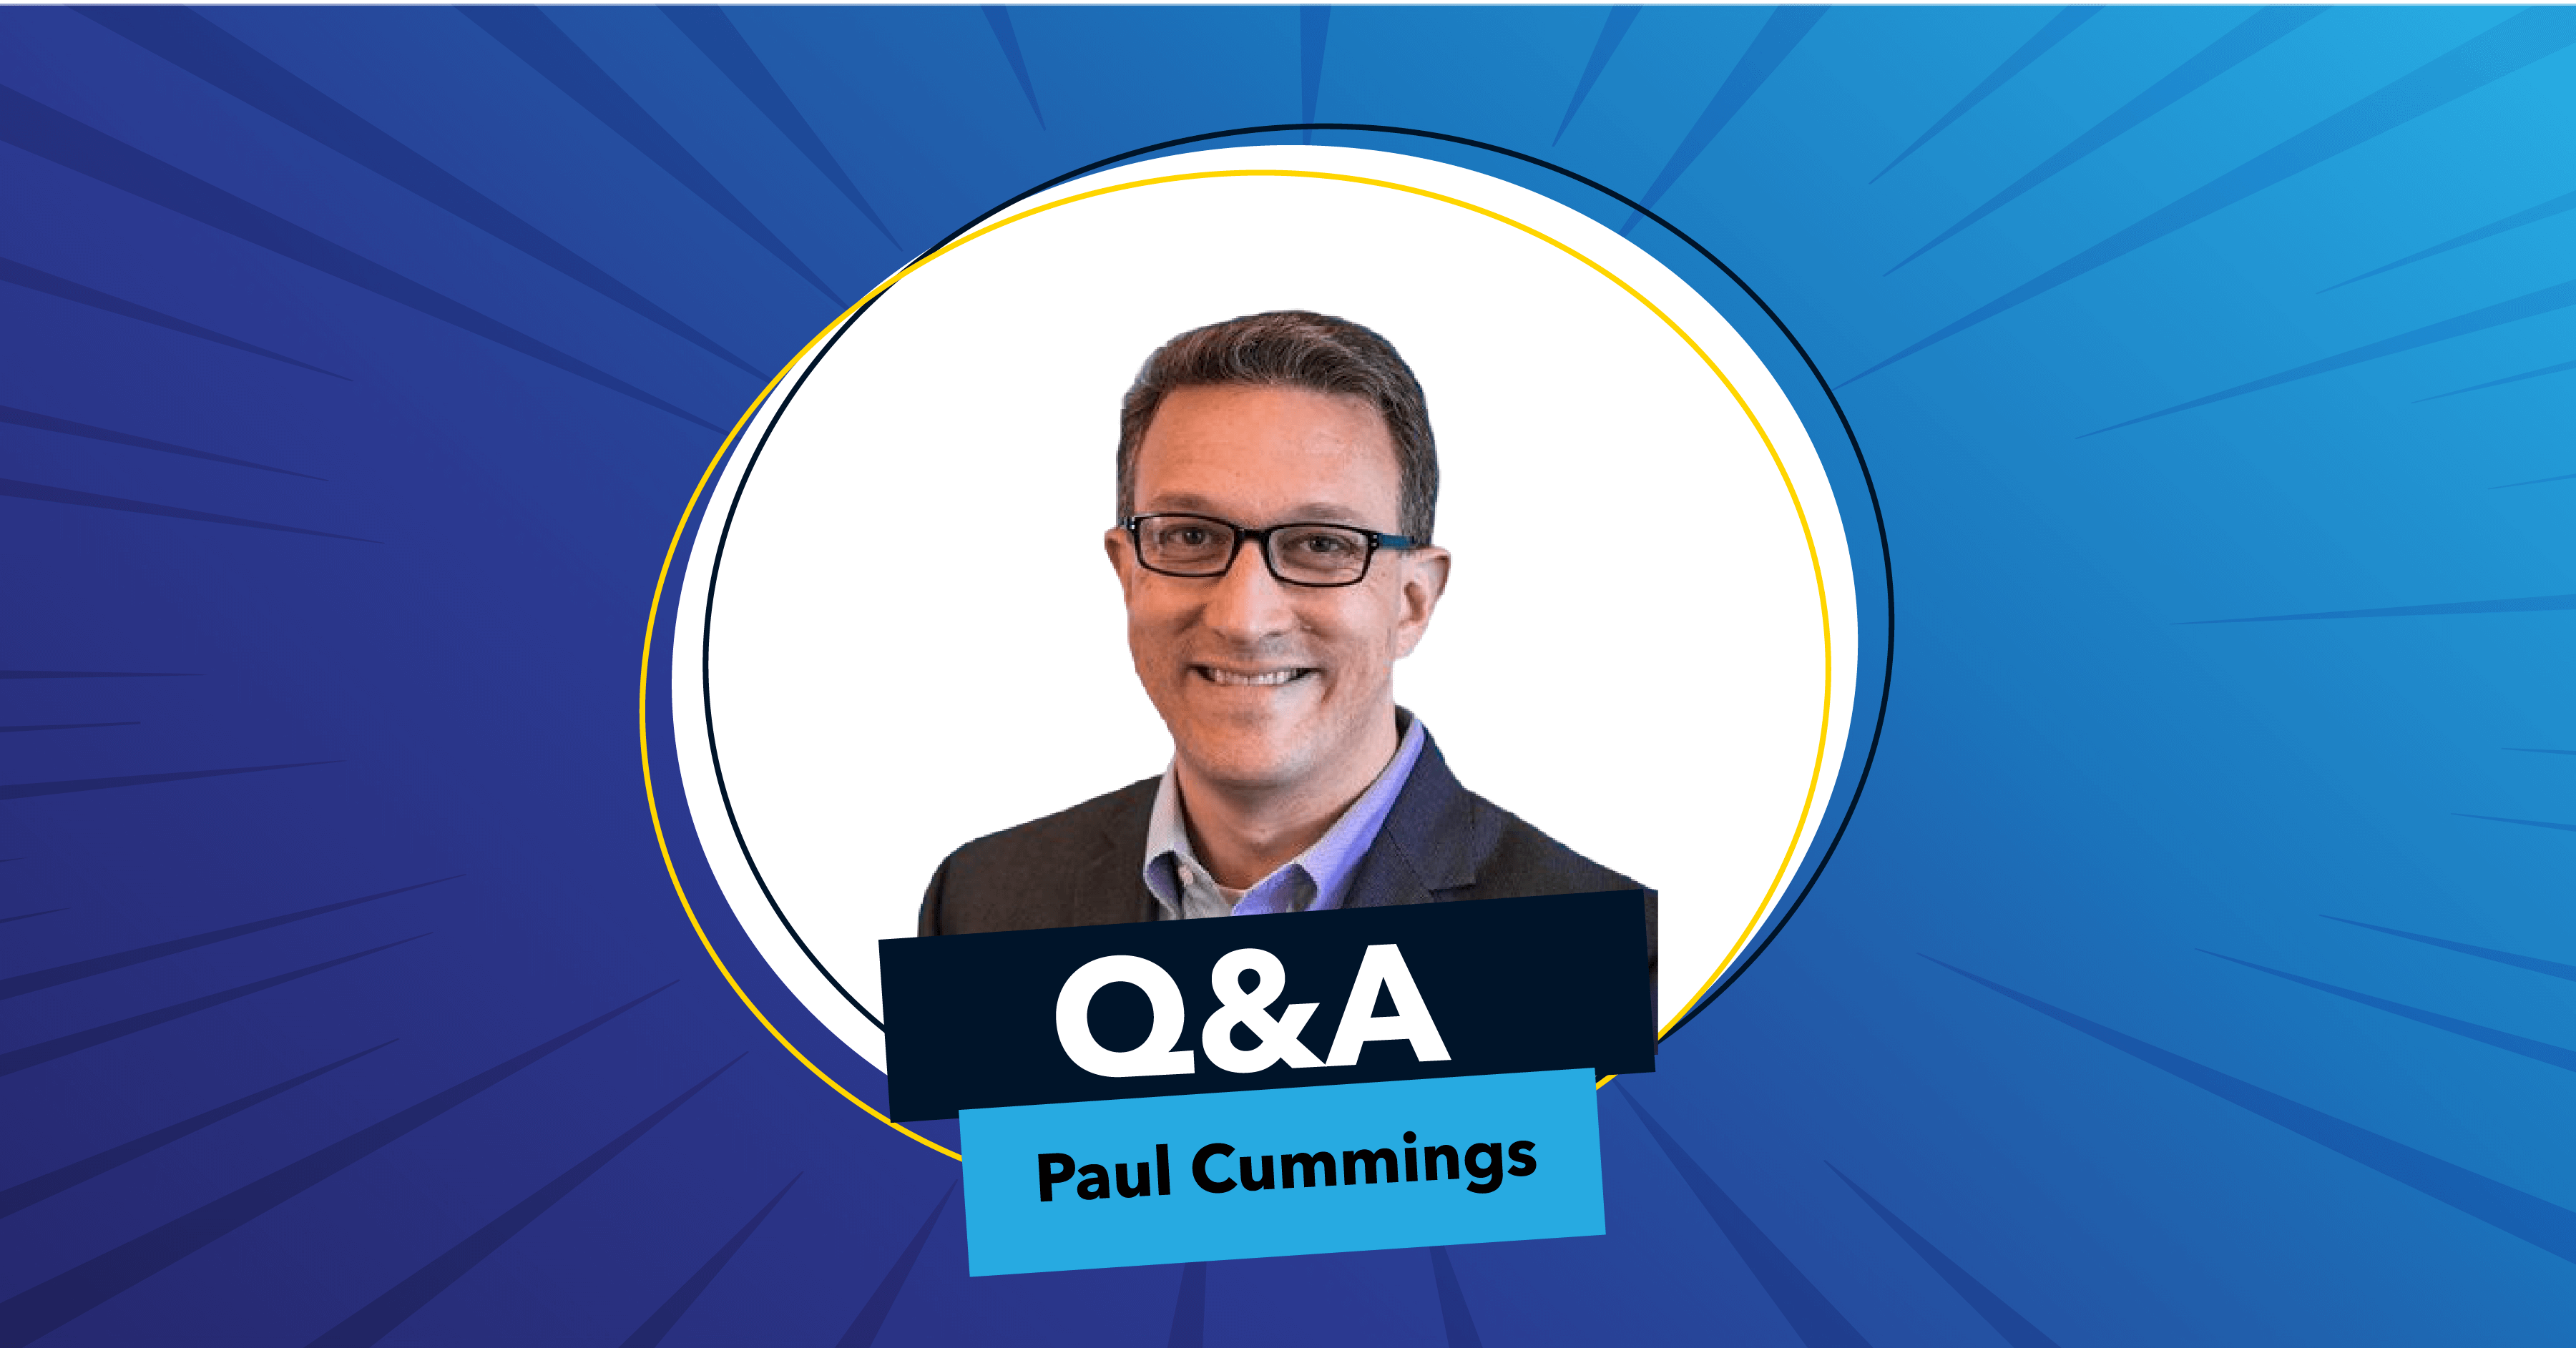 Is This Product a Good Fit? Q&A with Paul Cummings